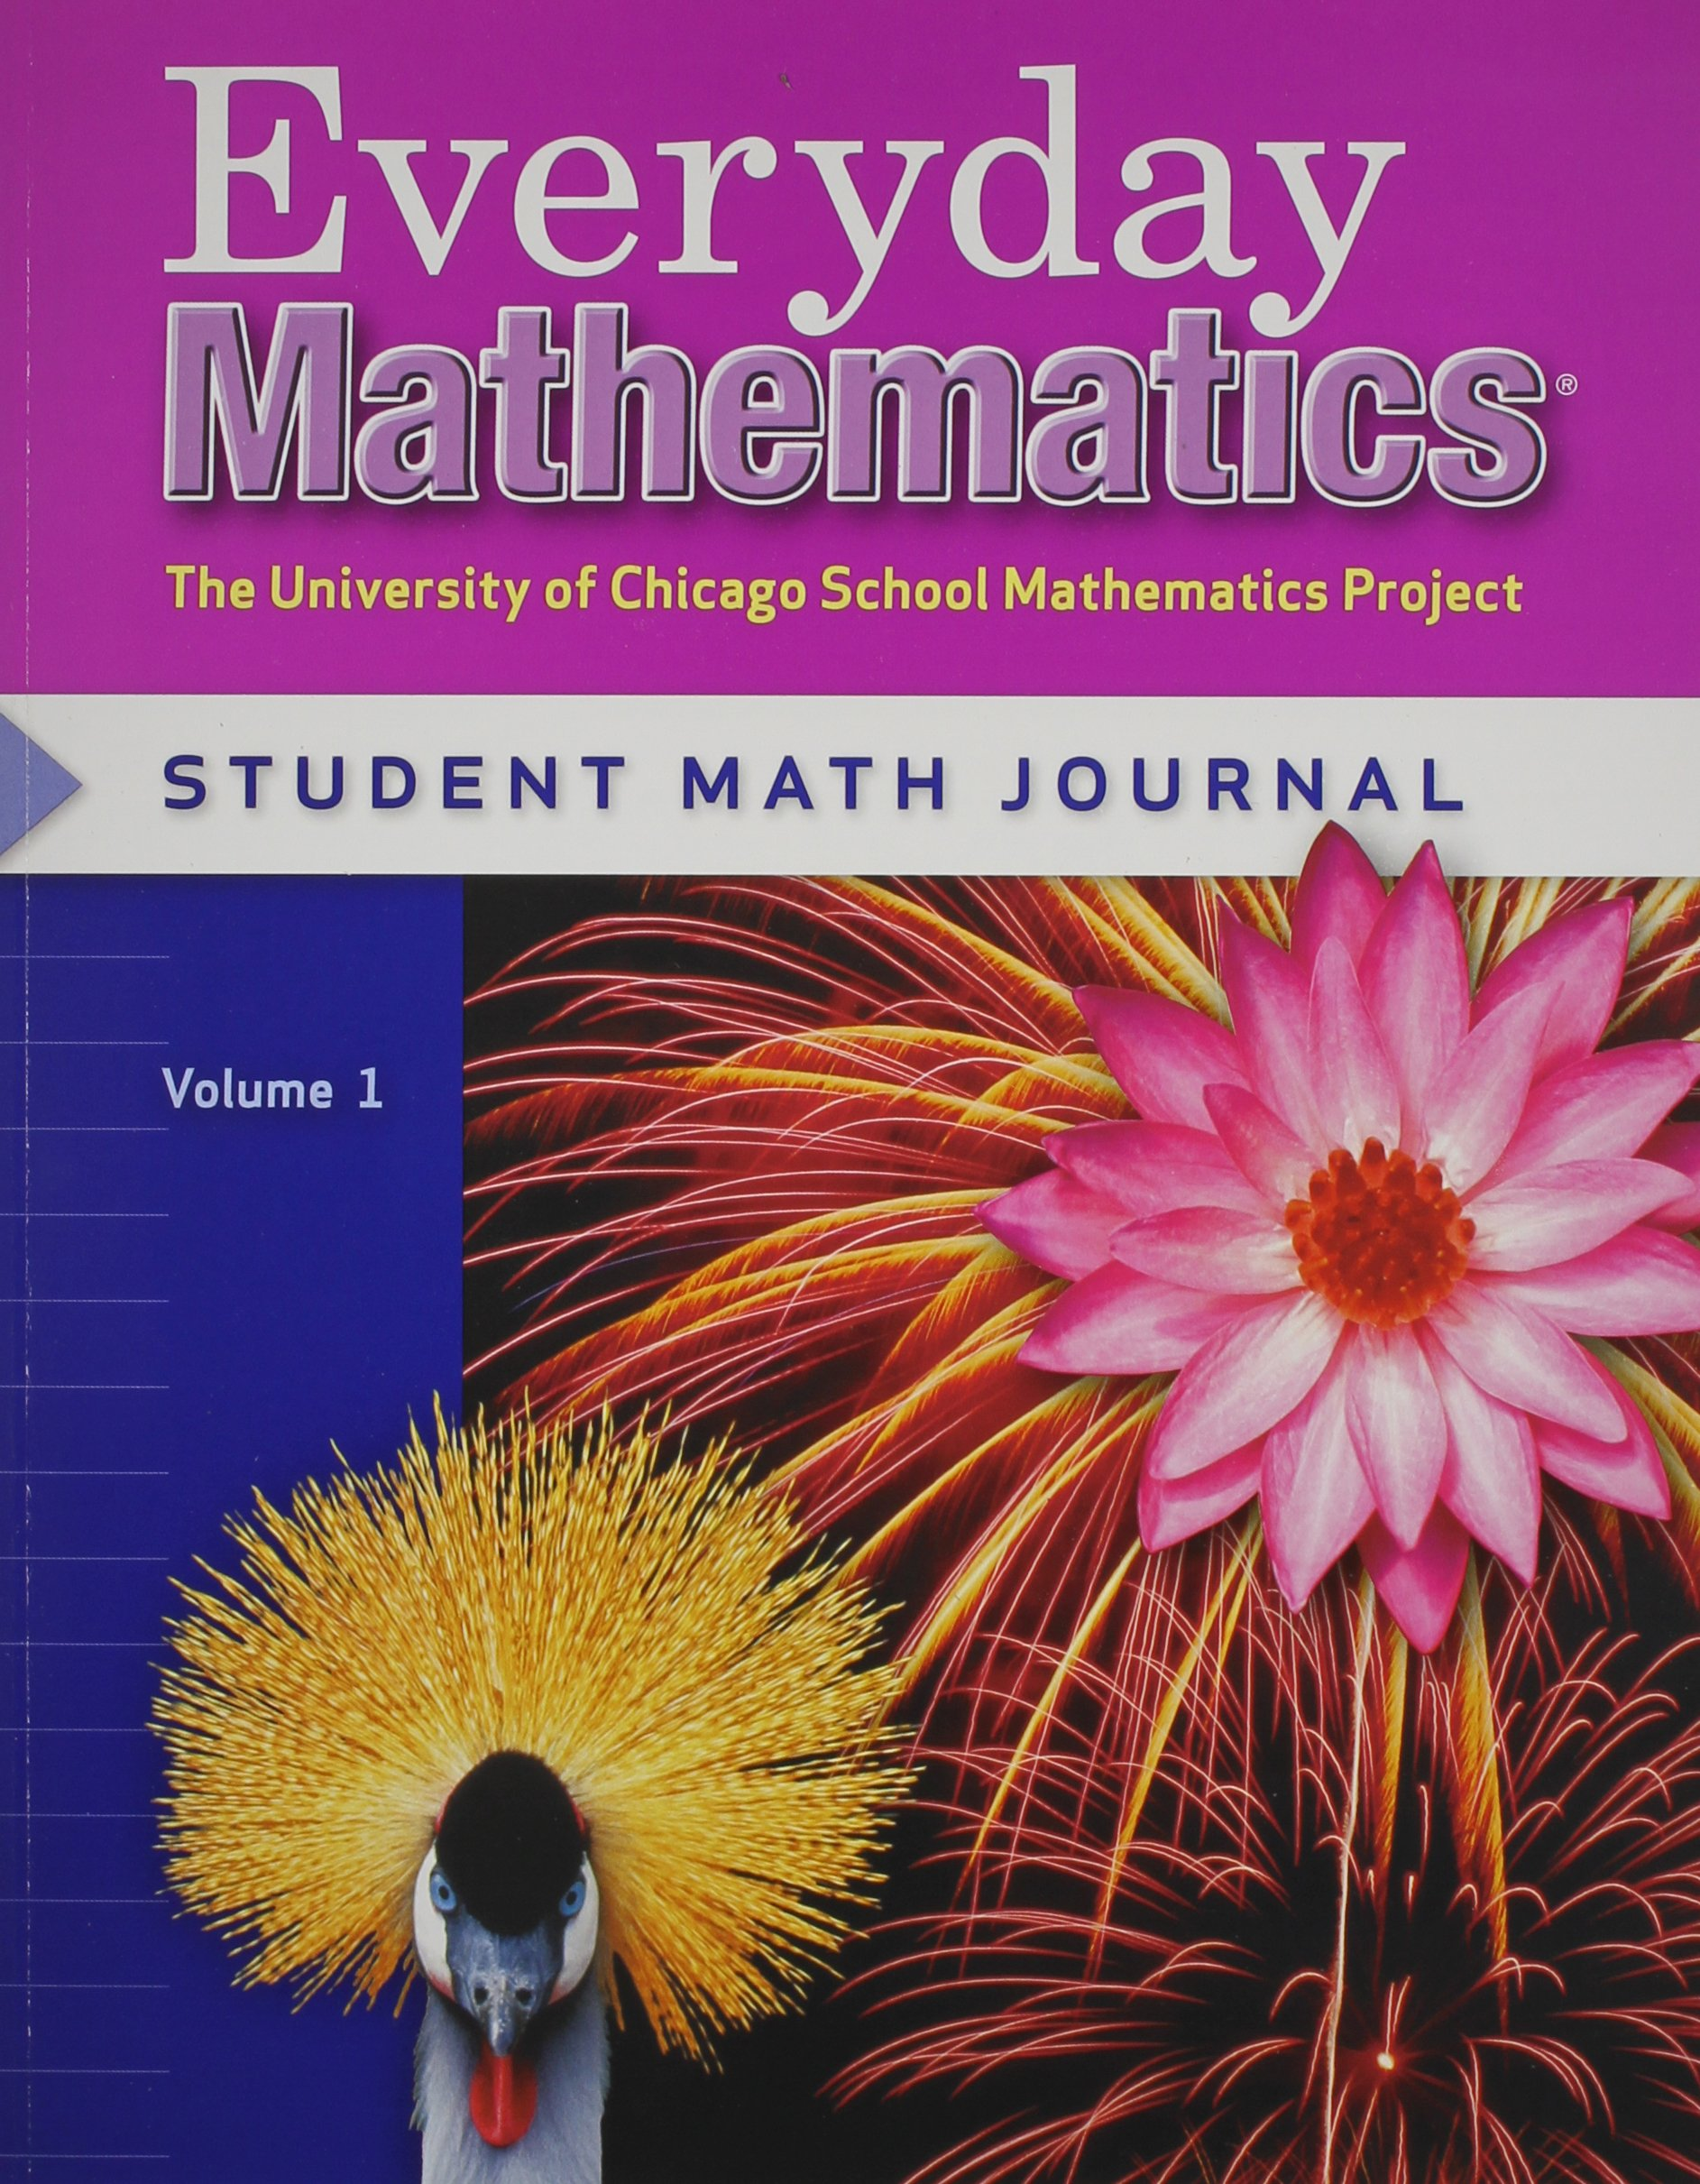 Printables Everyday Mathematics Worksheets everyday mathematics grade 4 student math journal volume 1 max bell andy isaacs john bretzlauf james mcbride amy dillard 9